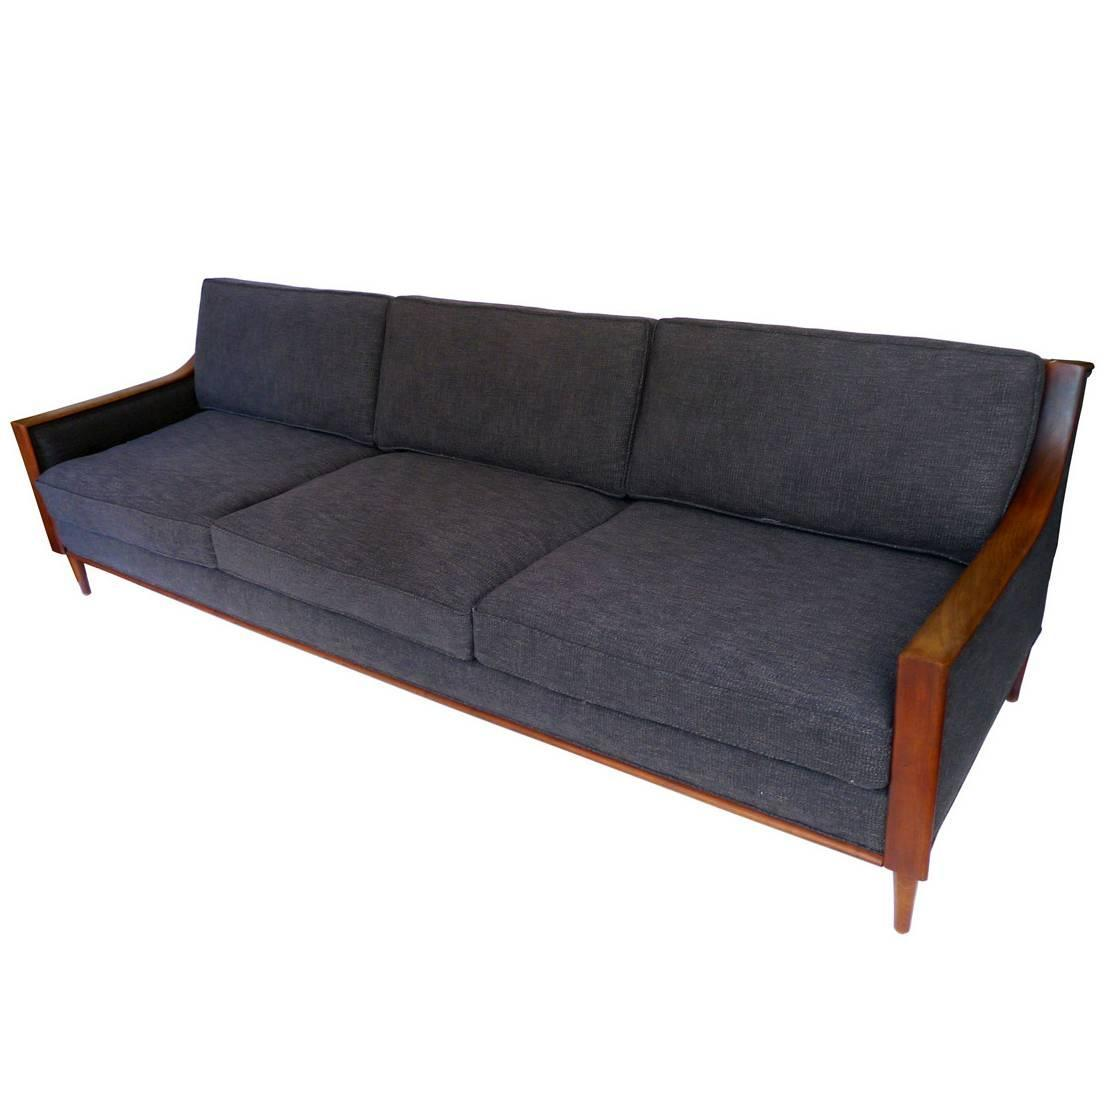 Reupholstered mid century scandinavian sofa at 1stdibs Reupholster loveseat